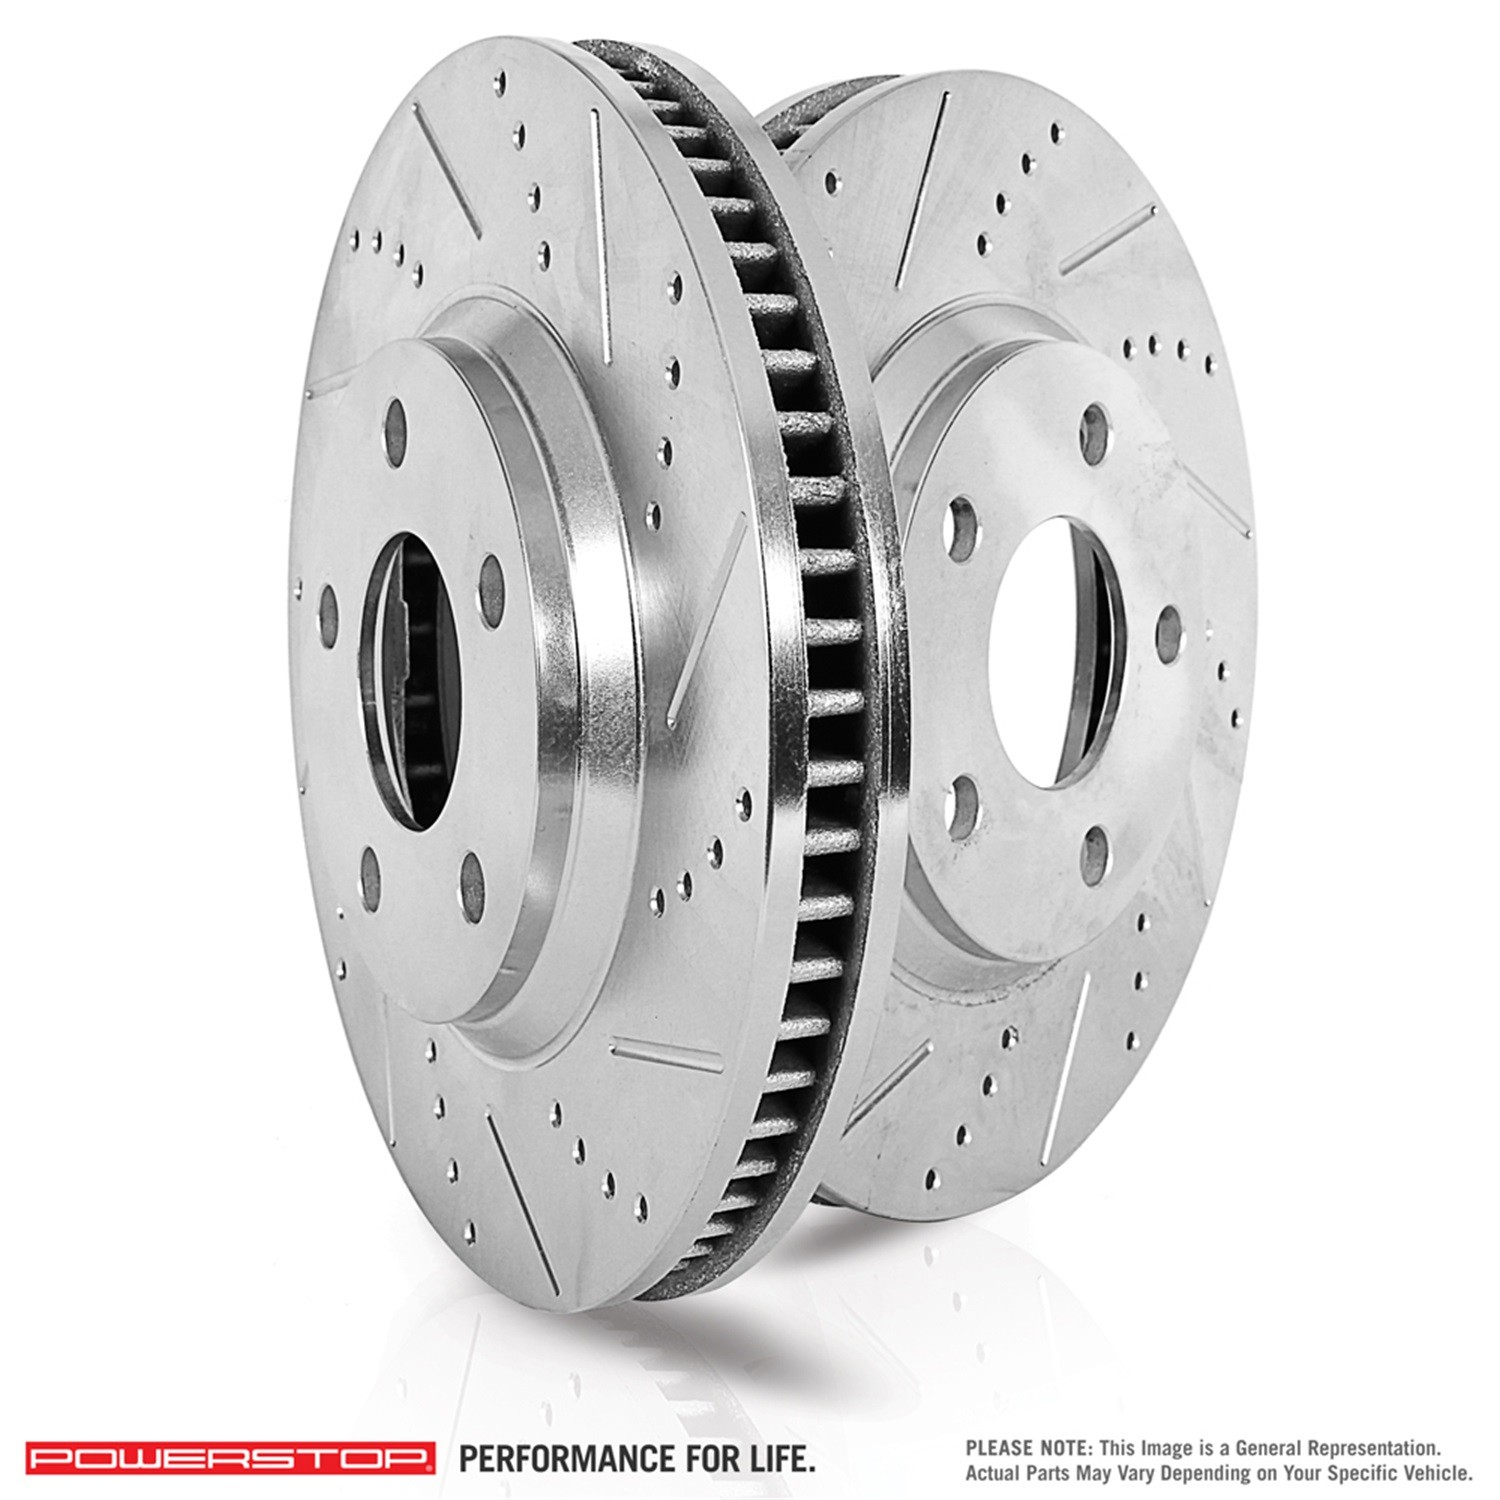 POWER STOP XPR - Power Stop Extreme Performance Drilled and Slotted Brake Rotors (Front) - PWX AR8238XPR